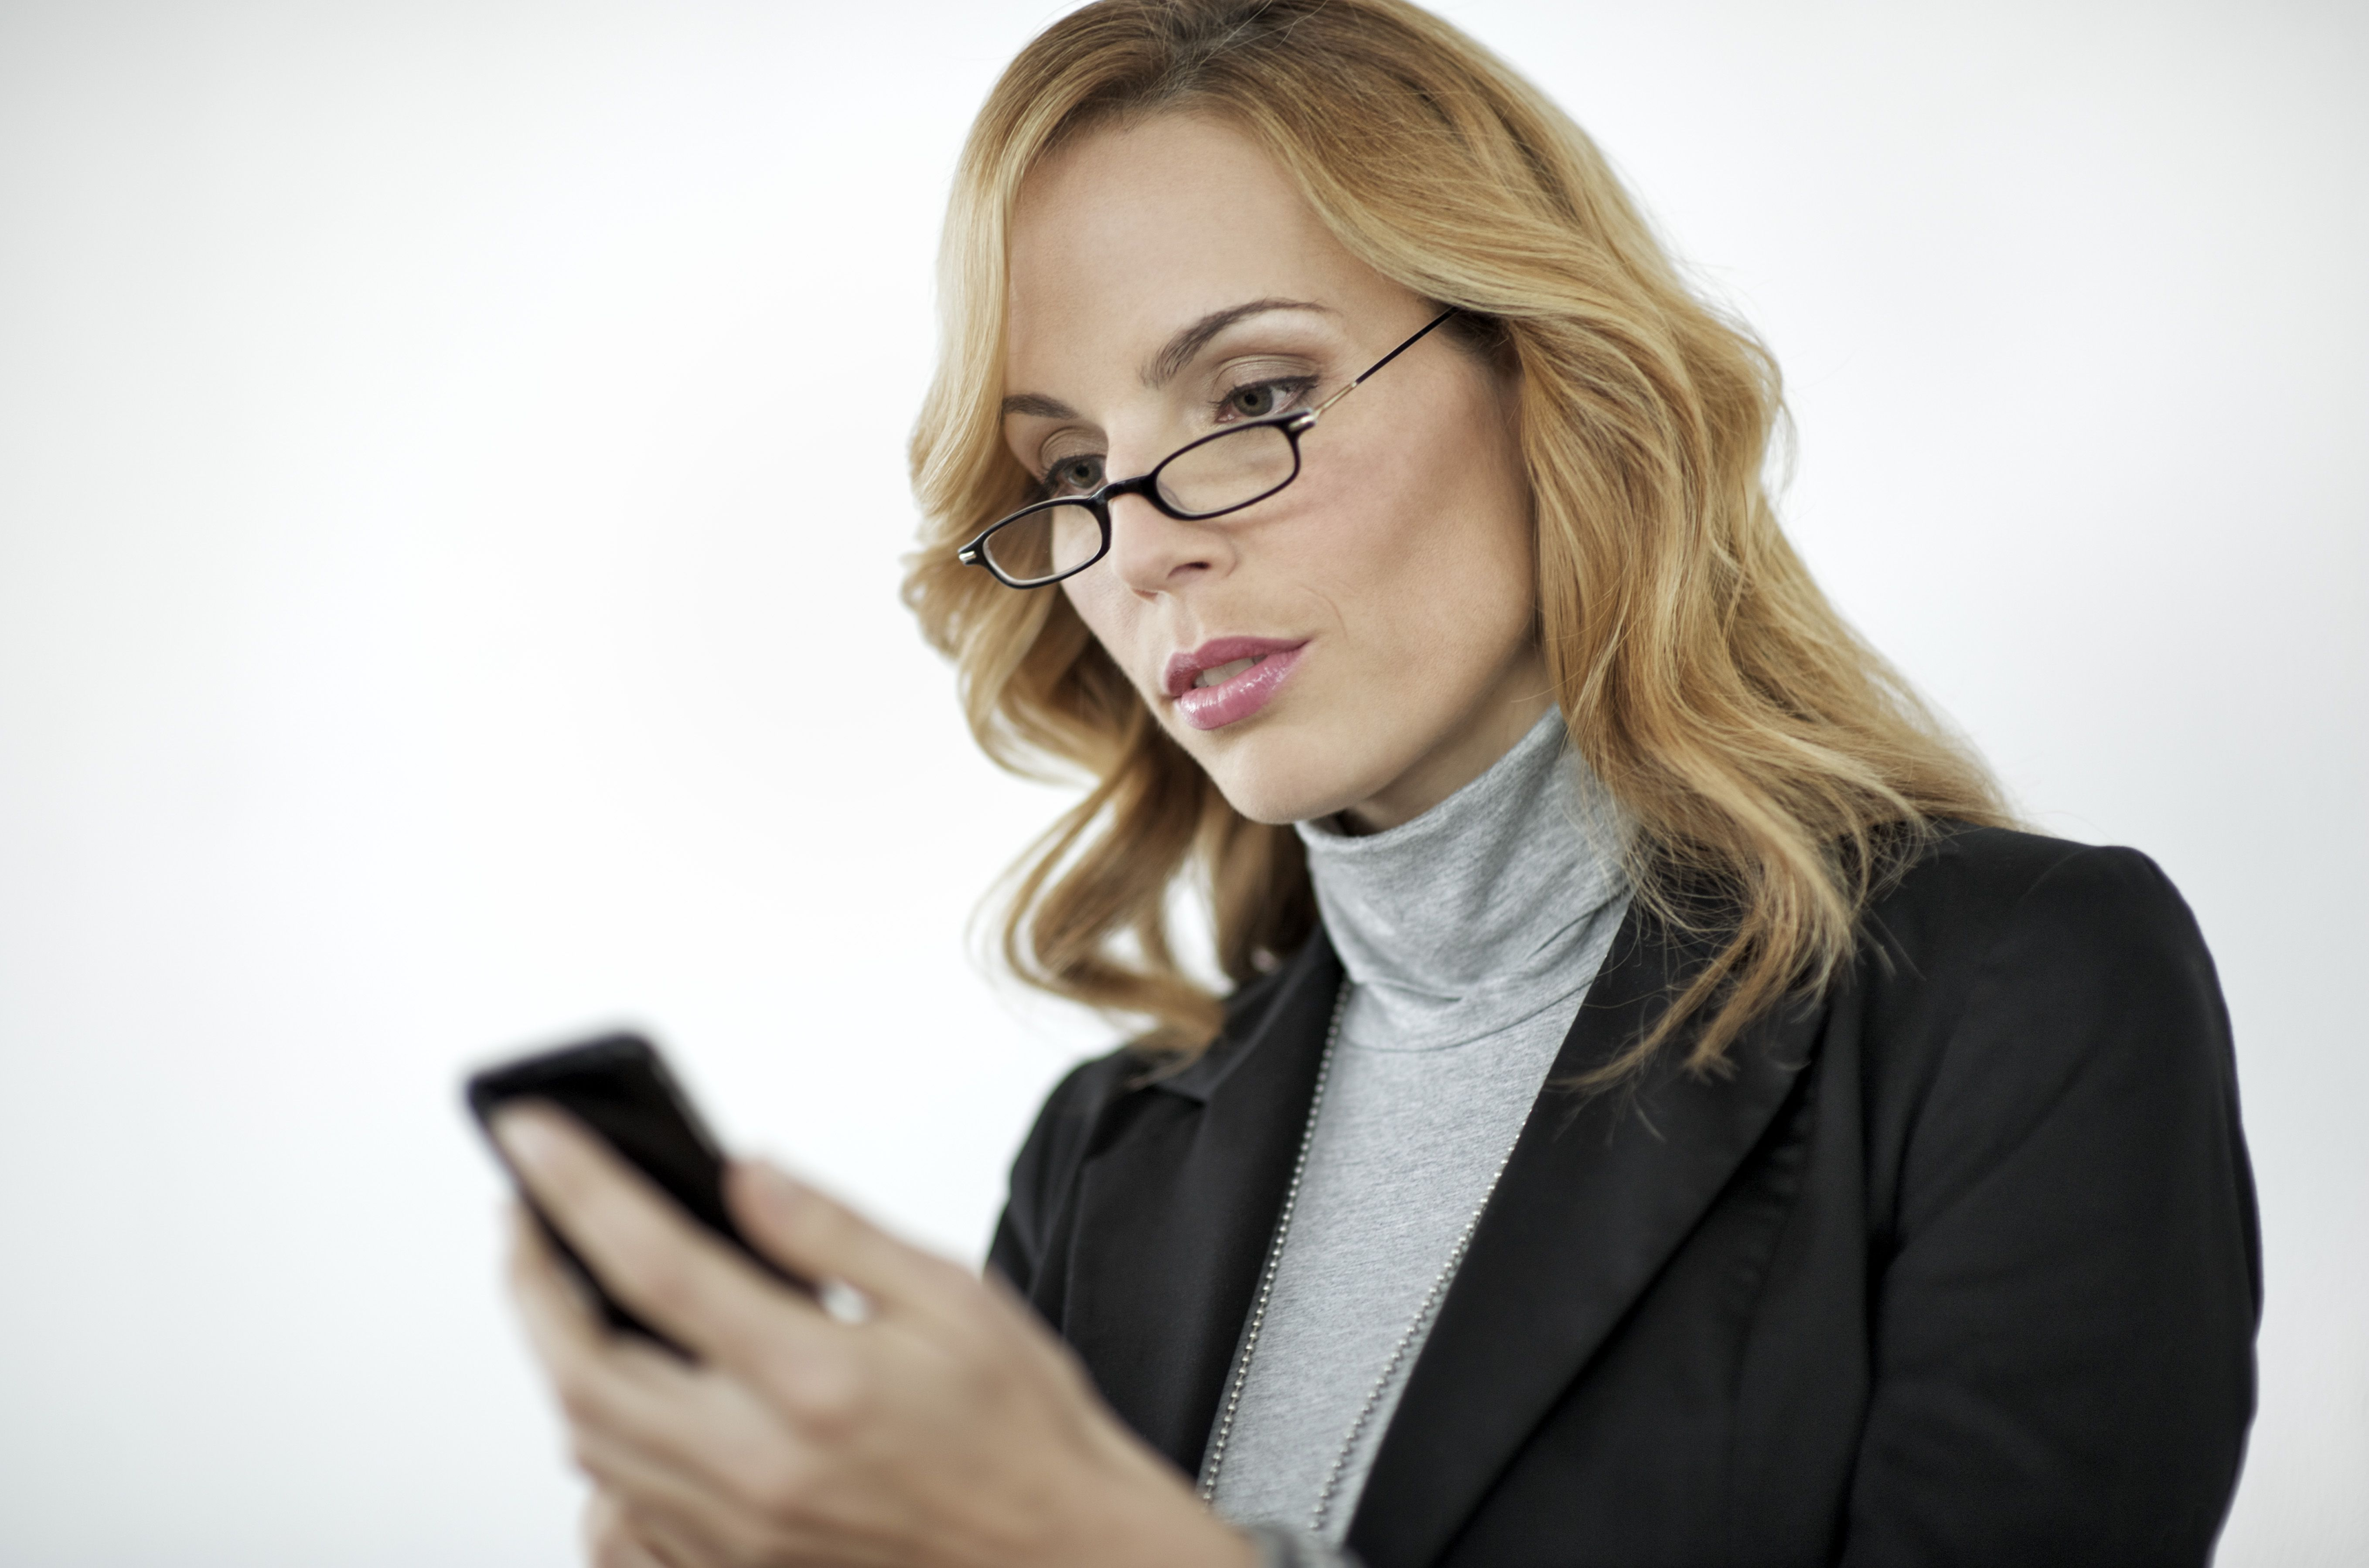 Businesswoman checks voice mail on mobile phone